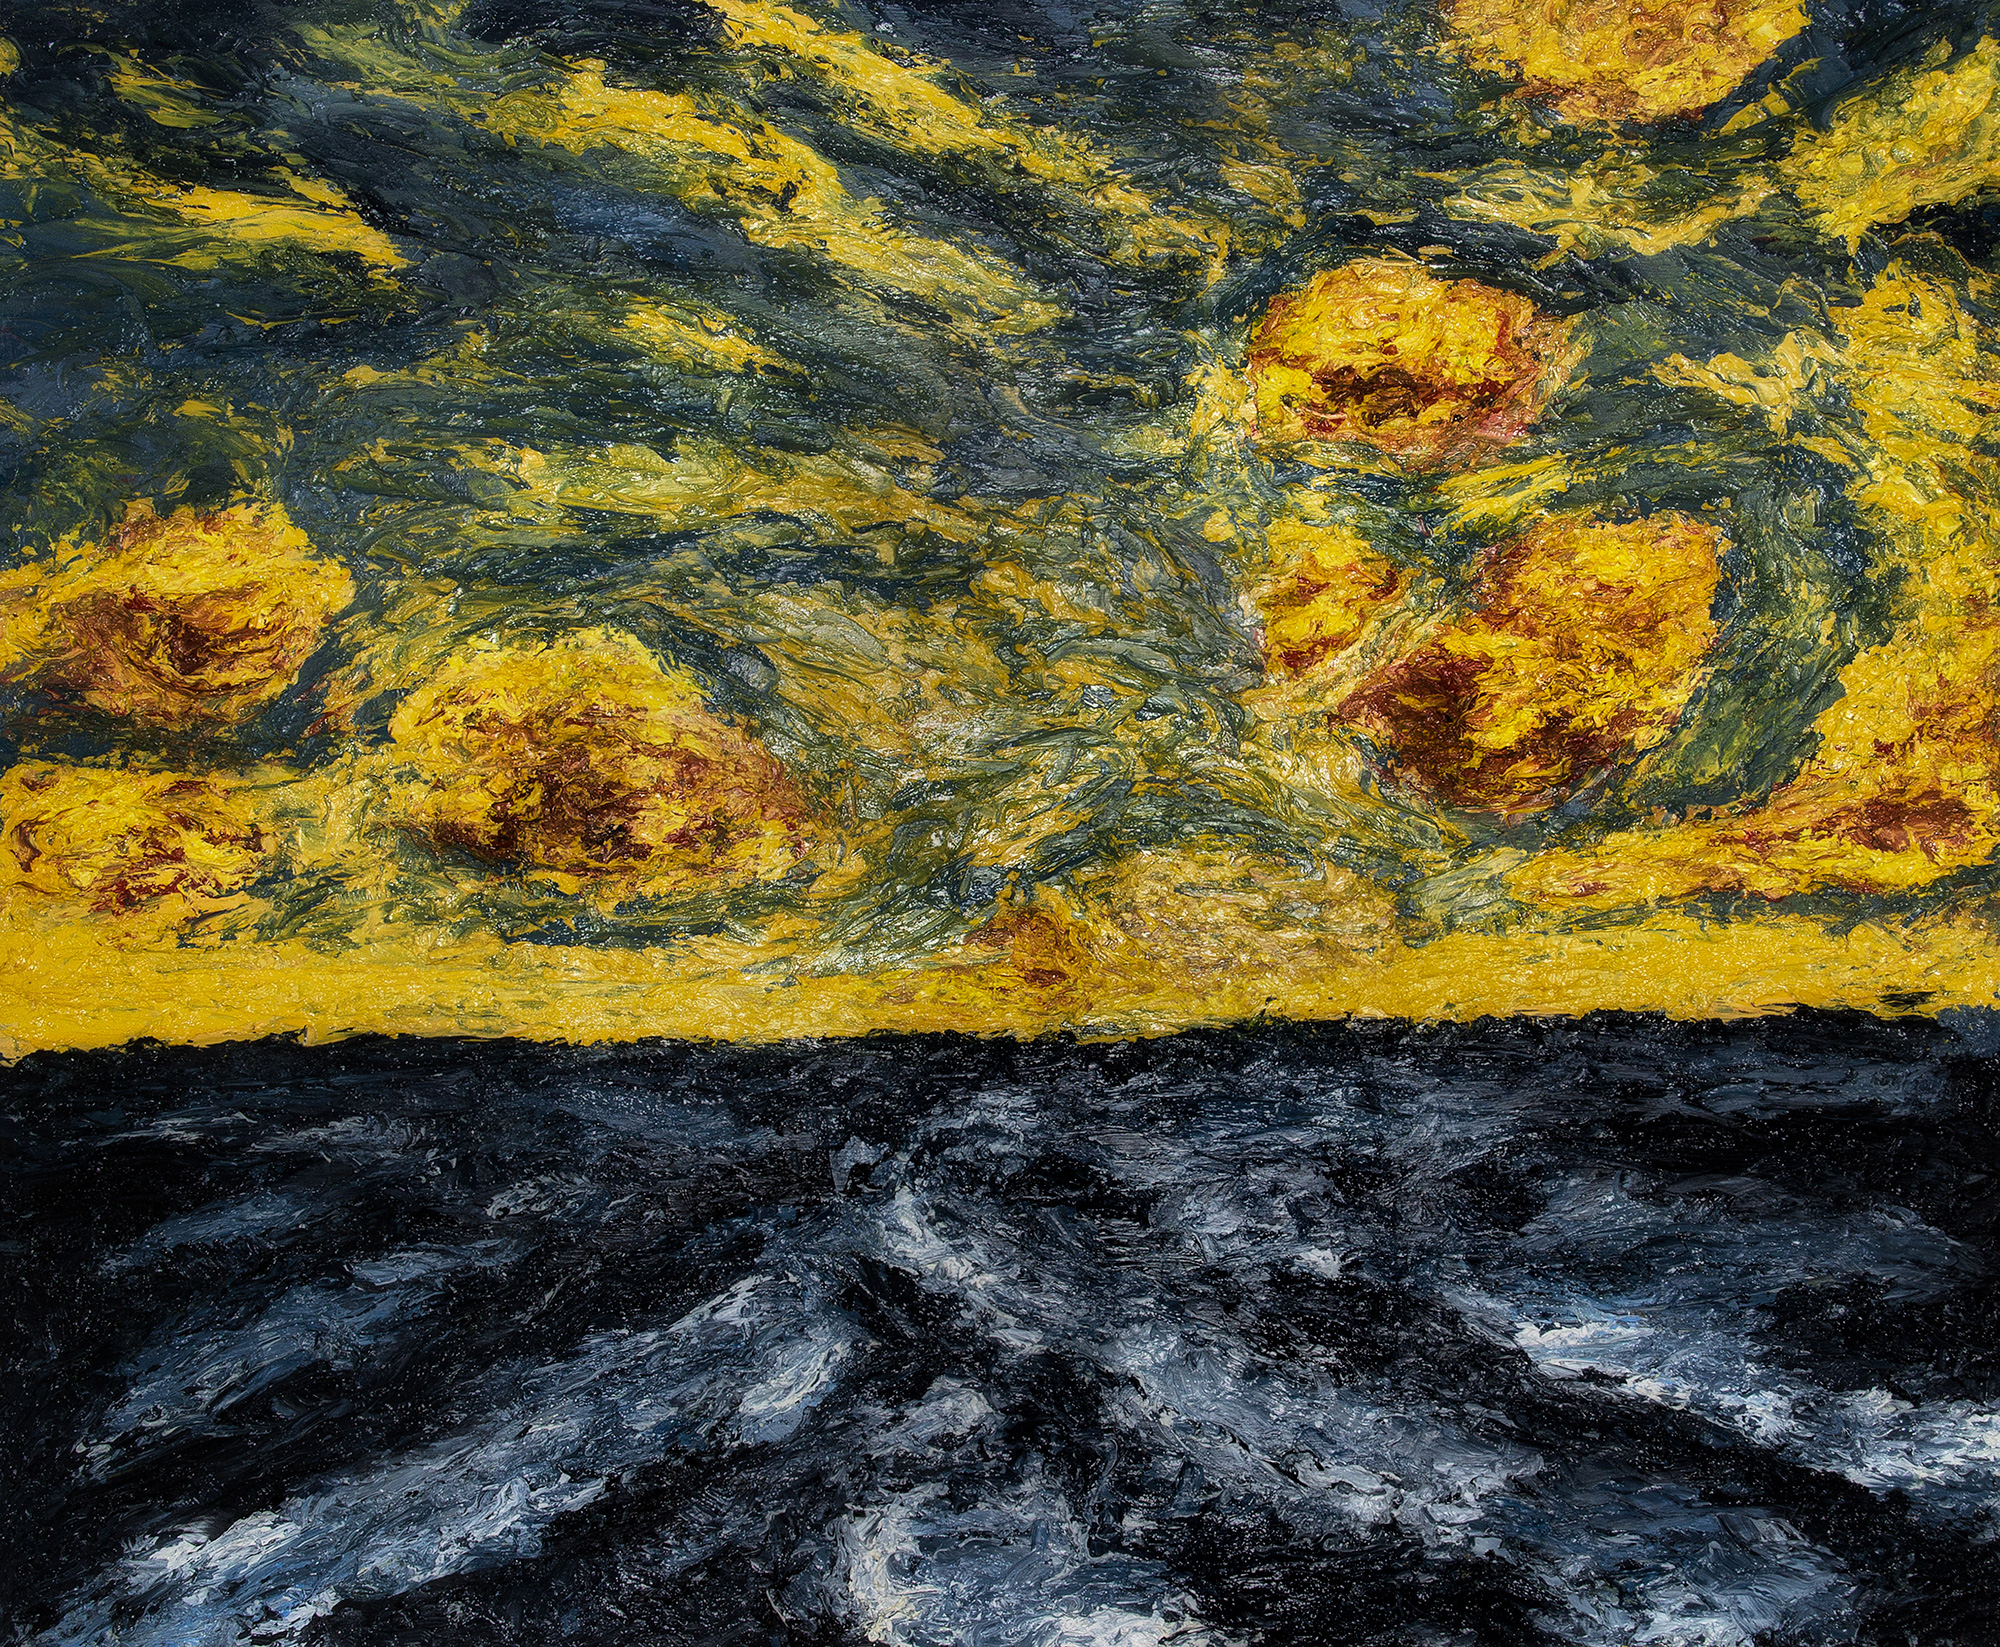 Emil-Nolde-Copy_Autumn-Sea-XII-1910_16.jpg